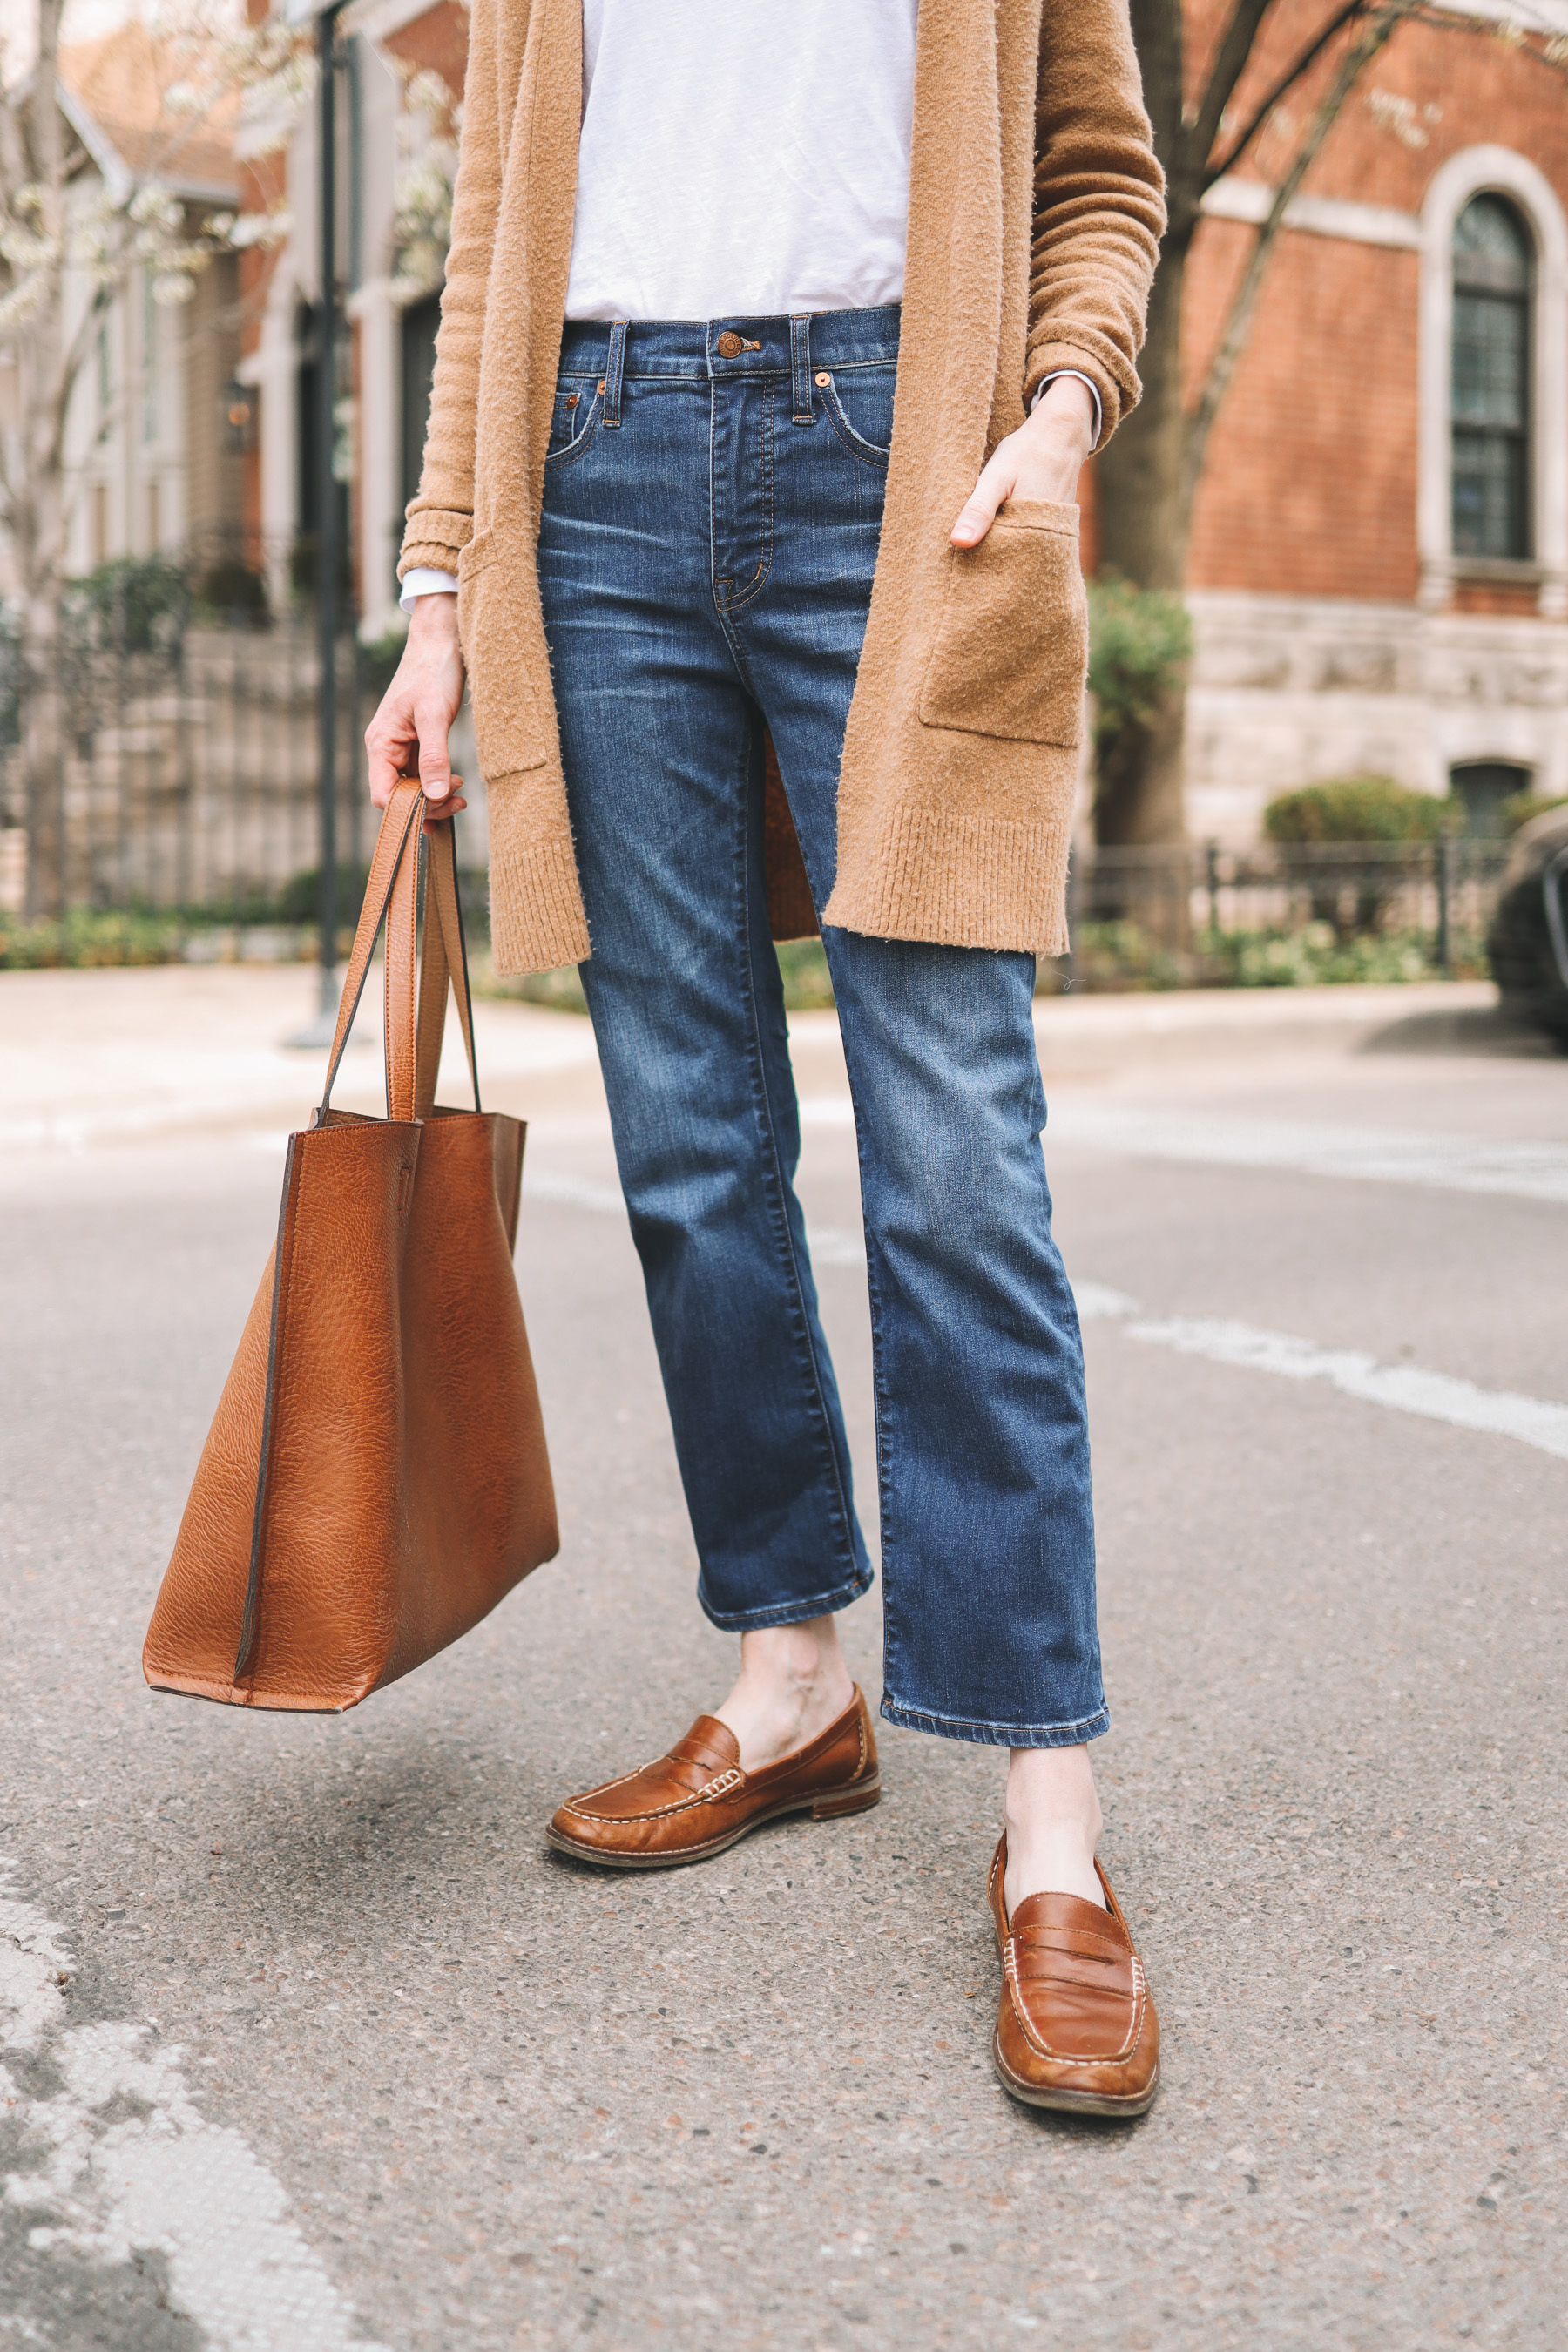 Nordstrom Faux Leather Tote | Go-To Casual Spring Outfit